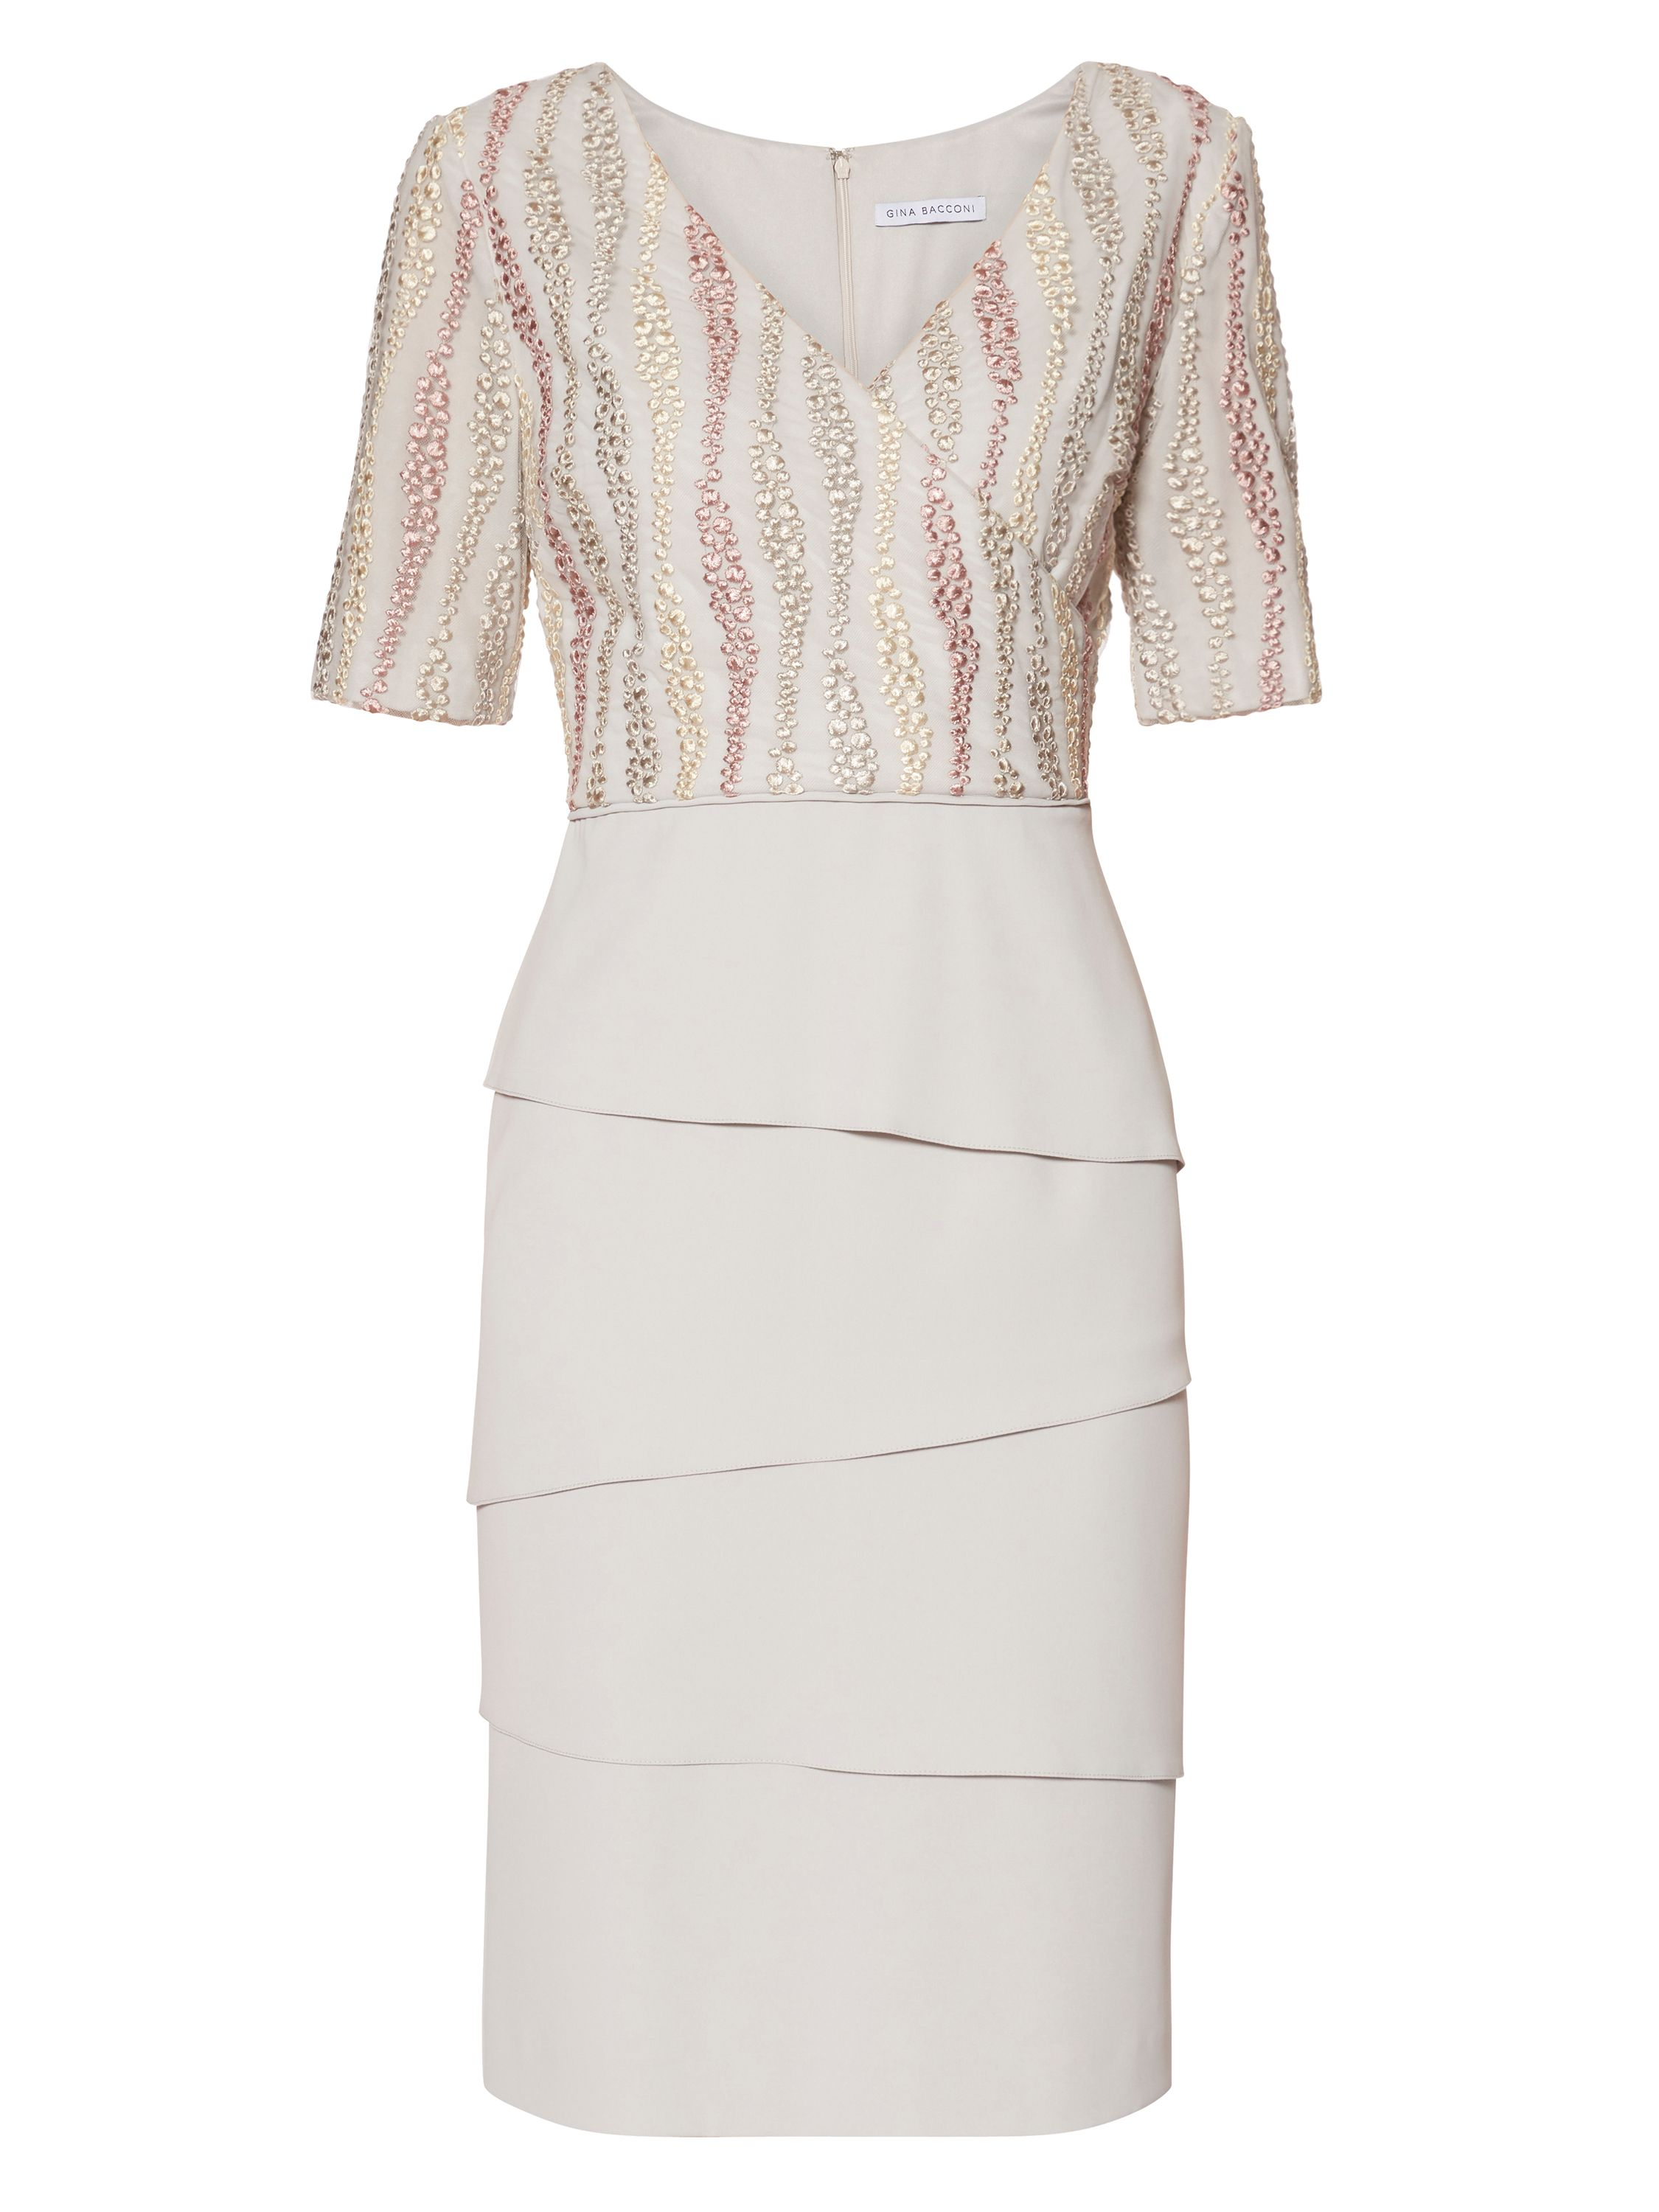 Gina Bacconi Crepe dress with embroidered mesh bodice, Silver